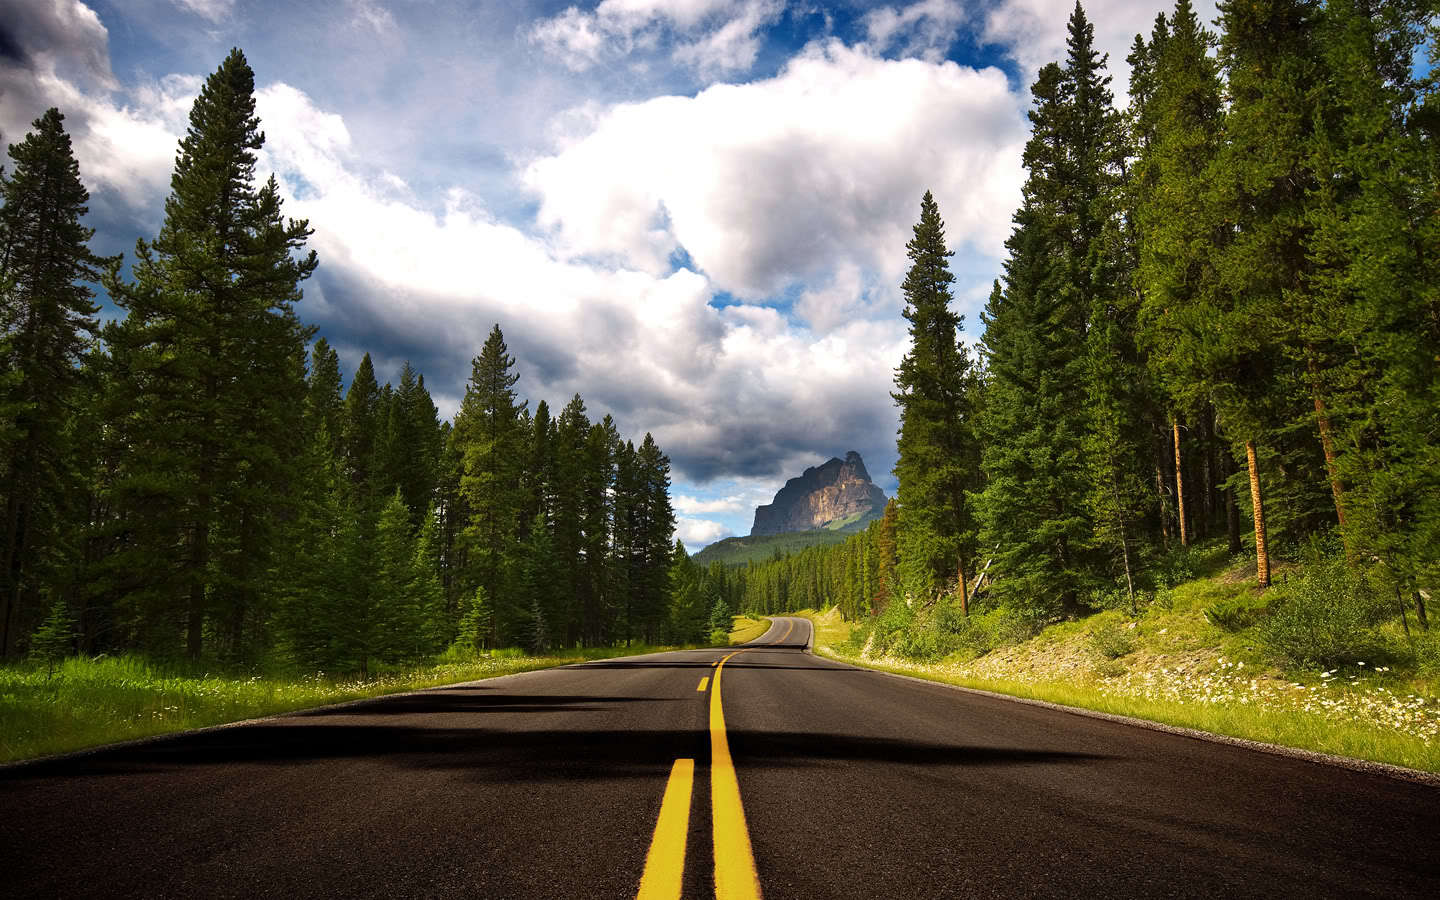 Mountains forest roads nature HD Wallpaper